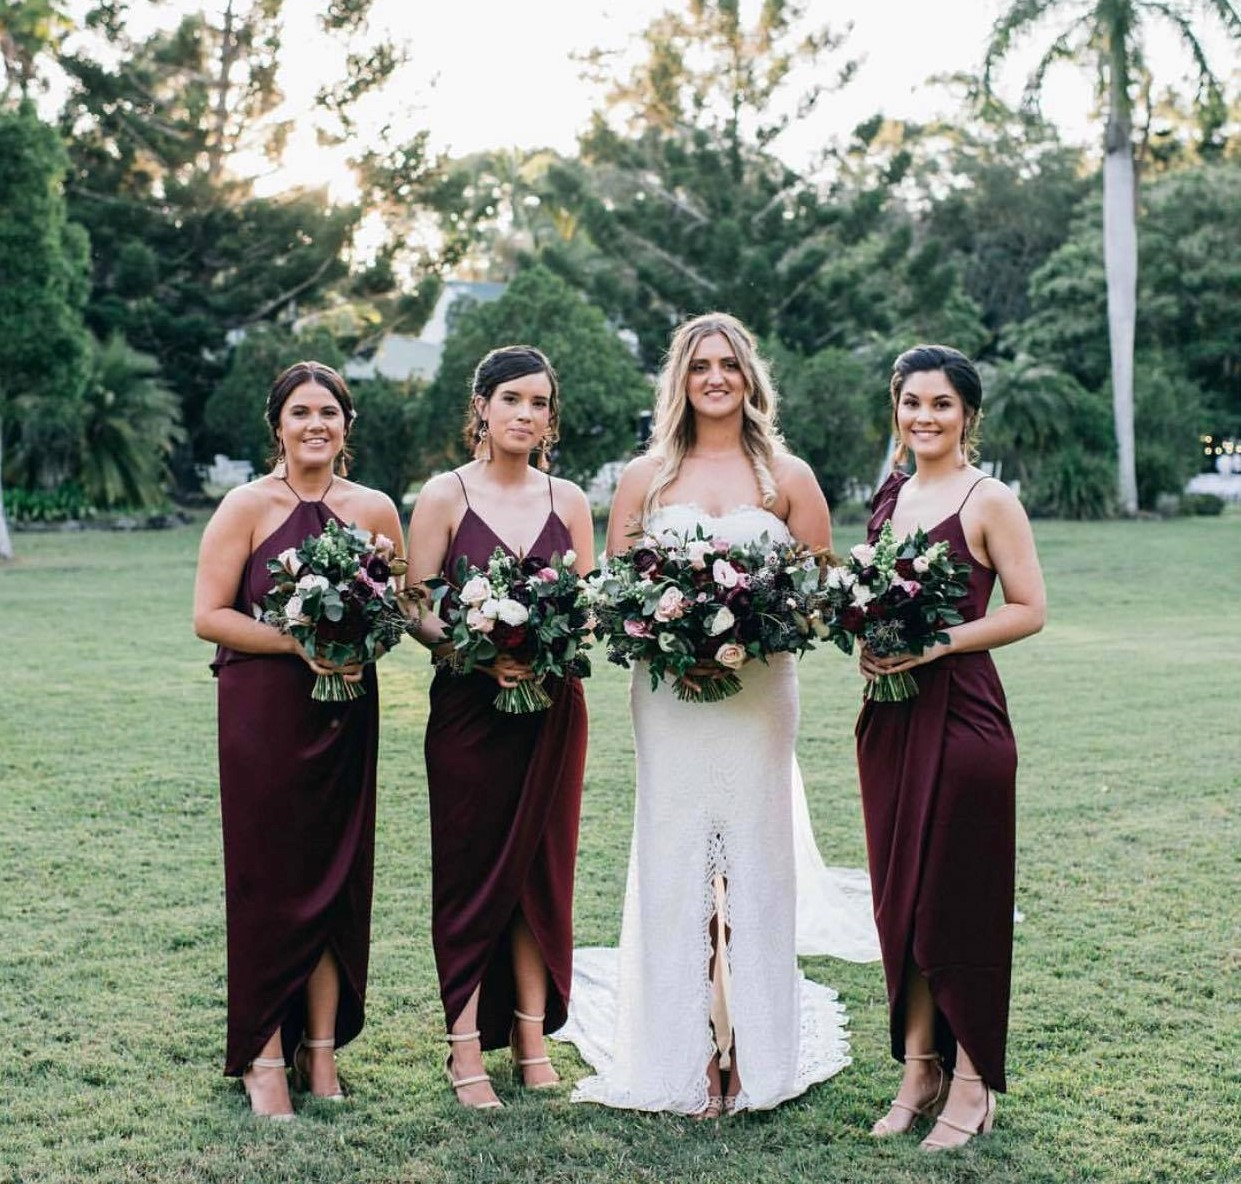 Shona Joy Cheap Bridesmaid Dresses Online Australia Sydney Melbourne Canberra Adelaide Perth